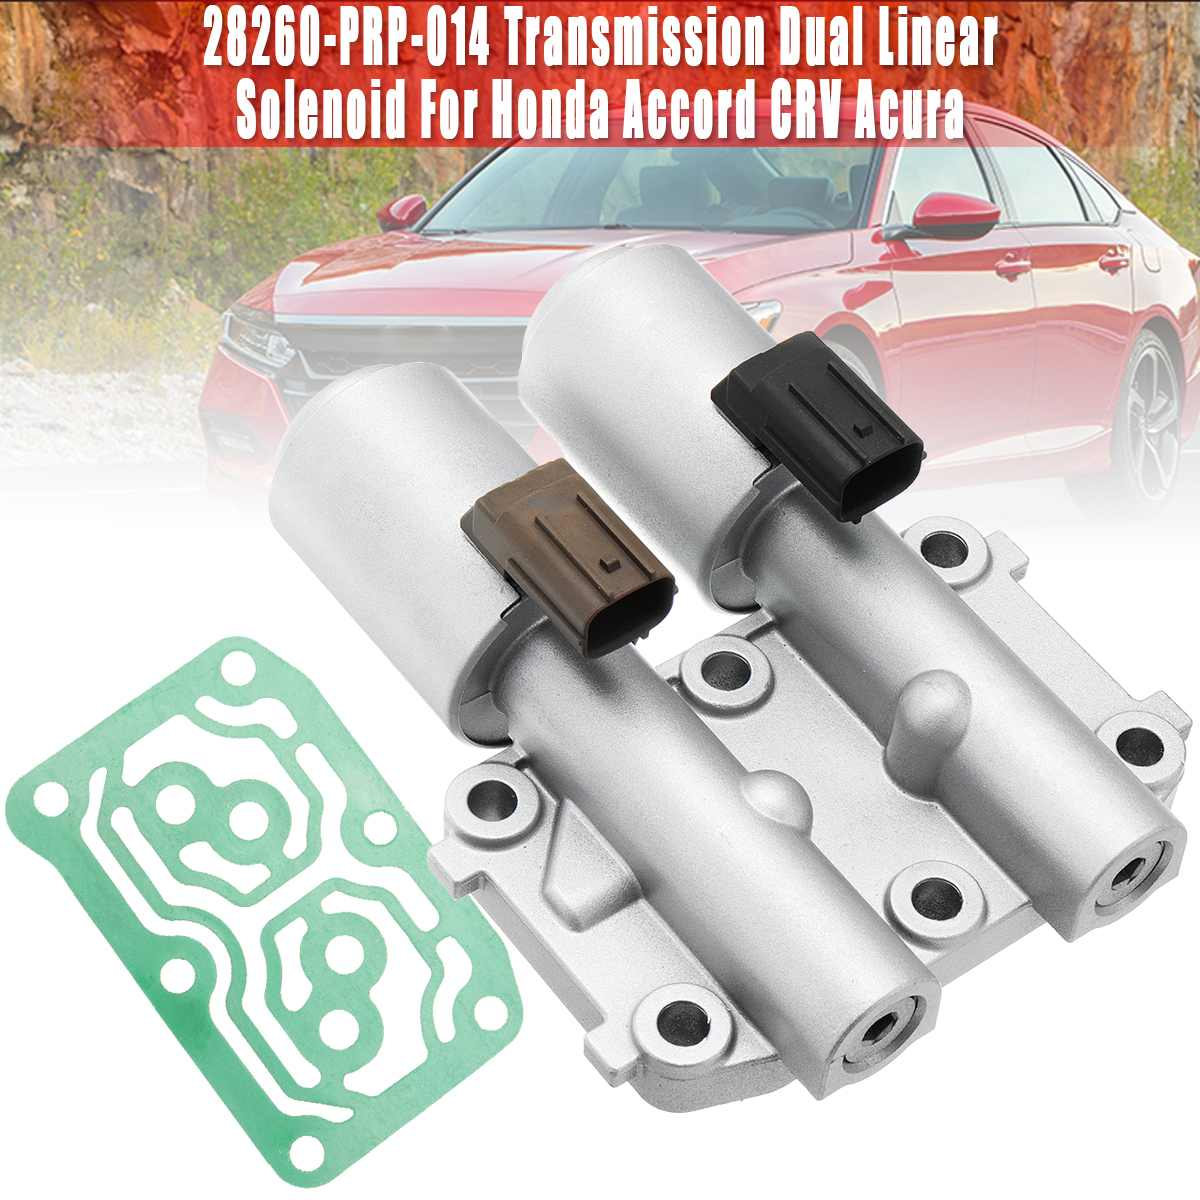 Transmission Dual Linear Solenoid Fit 28260-PRP-014 For Honda Accord/CRV/Acura Auto Replacement Automatic Transmission & Parts